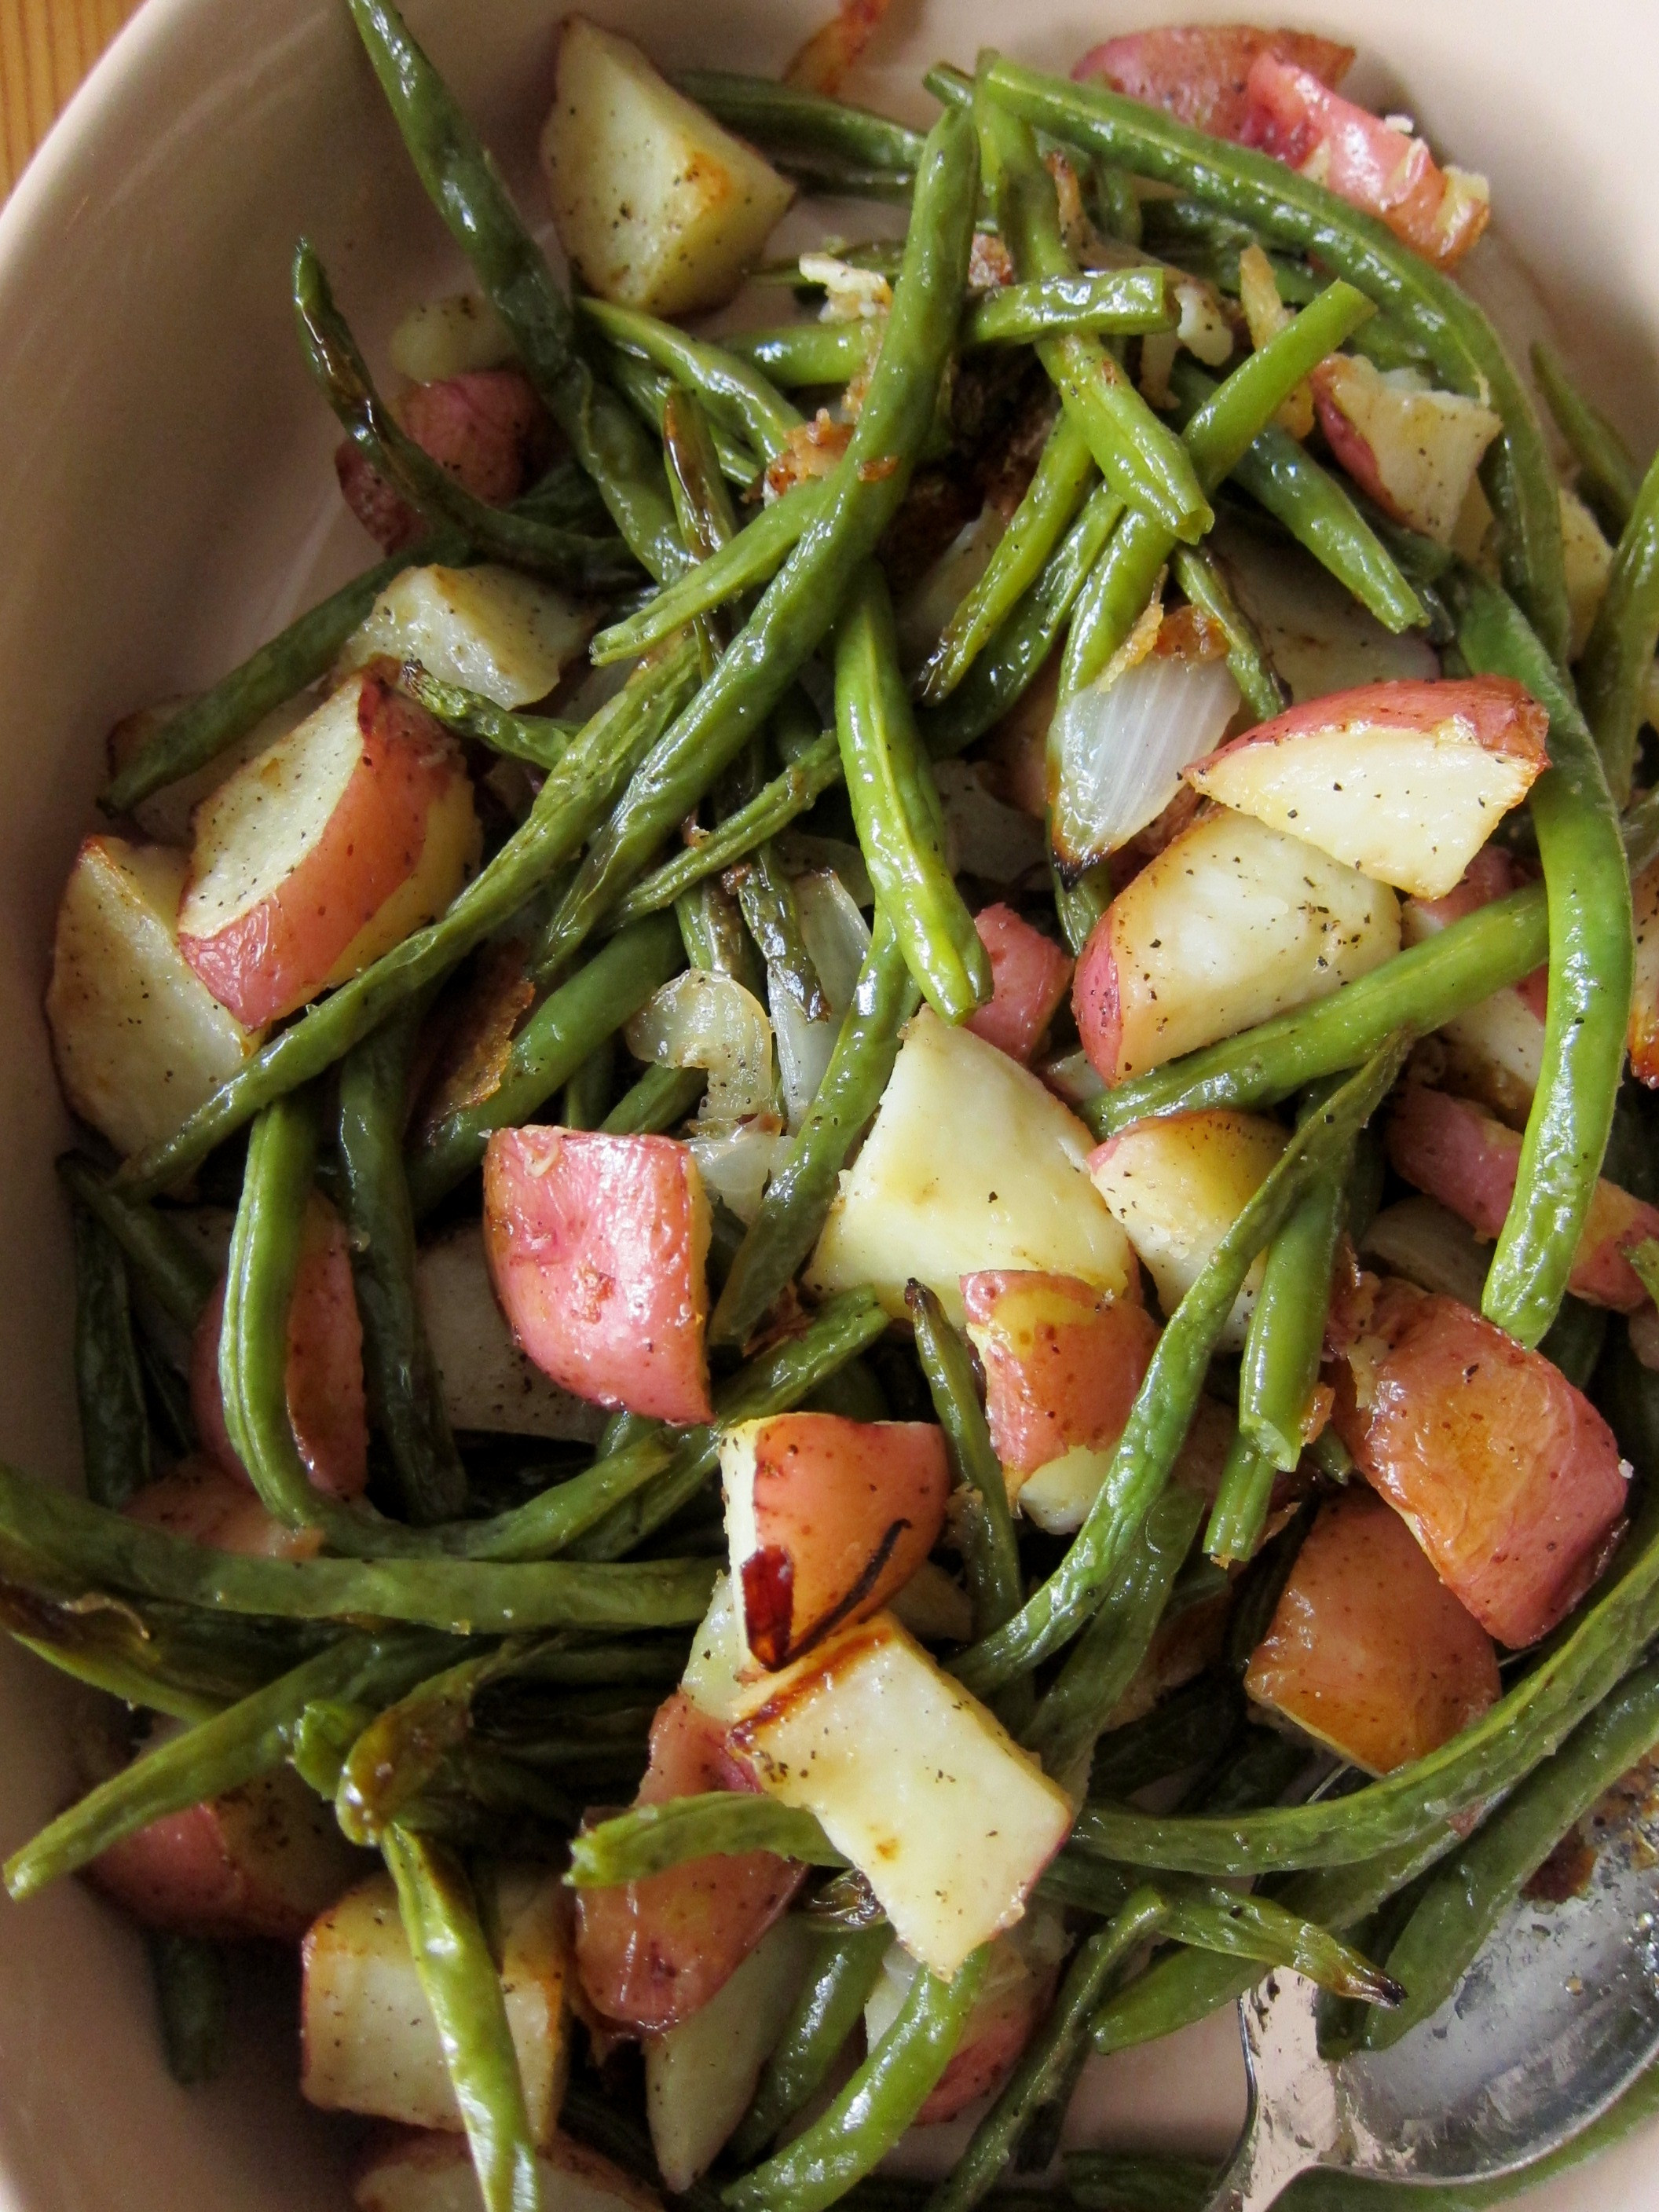 Beans Greens Potatoes  Green Beans Oven Roasted Green Beans And Potatoes